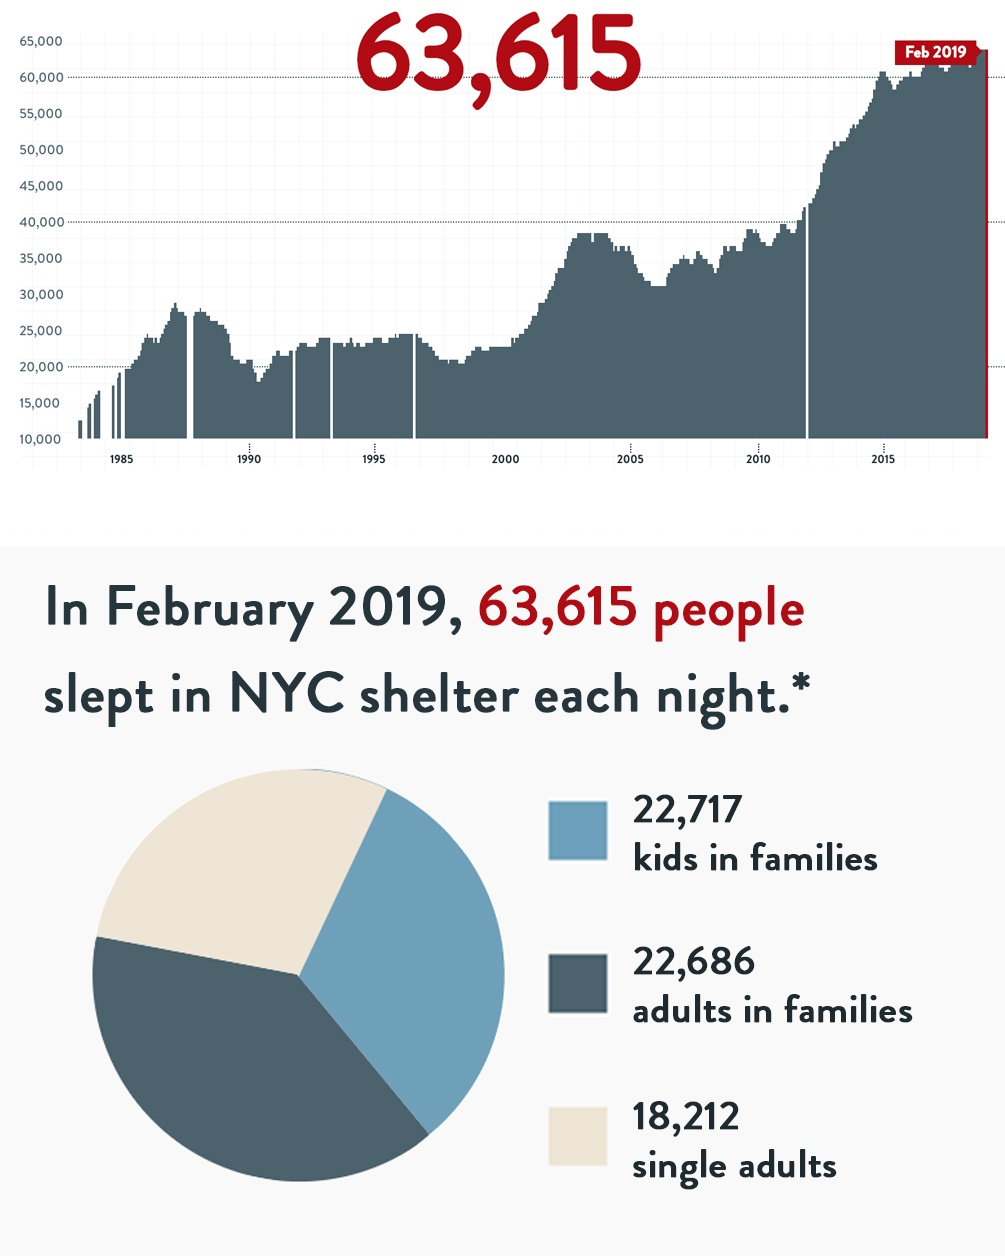 Number of Homeless People in NYC Shelters Each Night